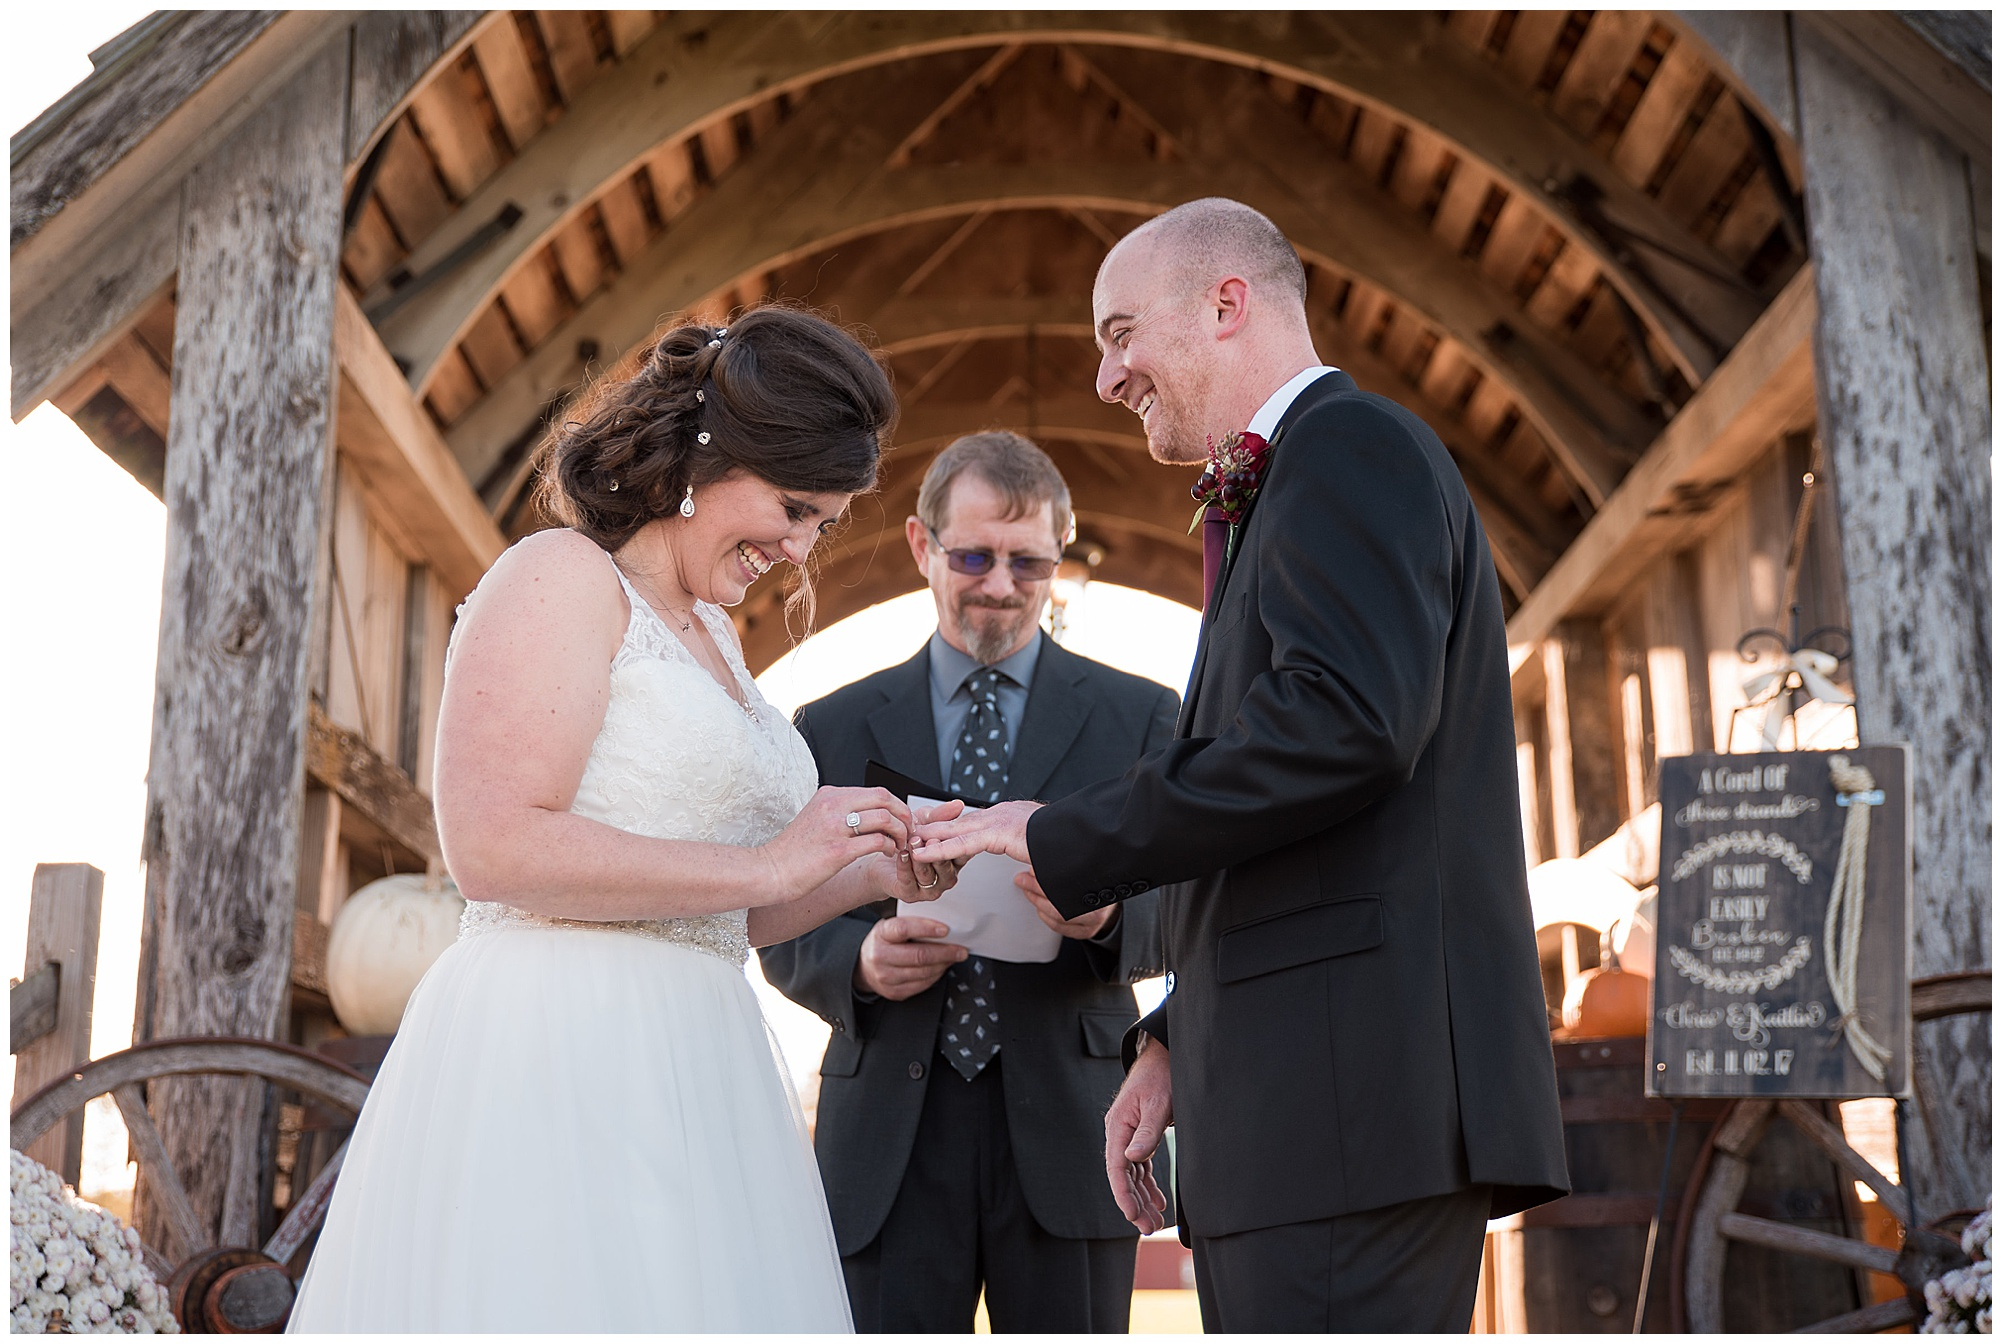 exchange of rings and huge smiles. wedding photos outdoors at covered bridge inn in lewes delaware. historic wedding barn venue on the eastern shore. fall wedding in november with rustic decor theme.